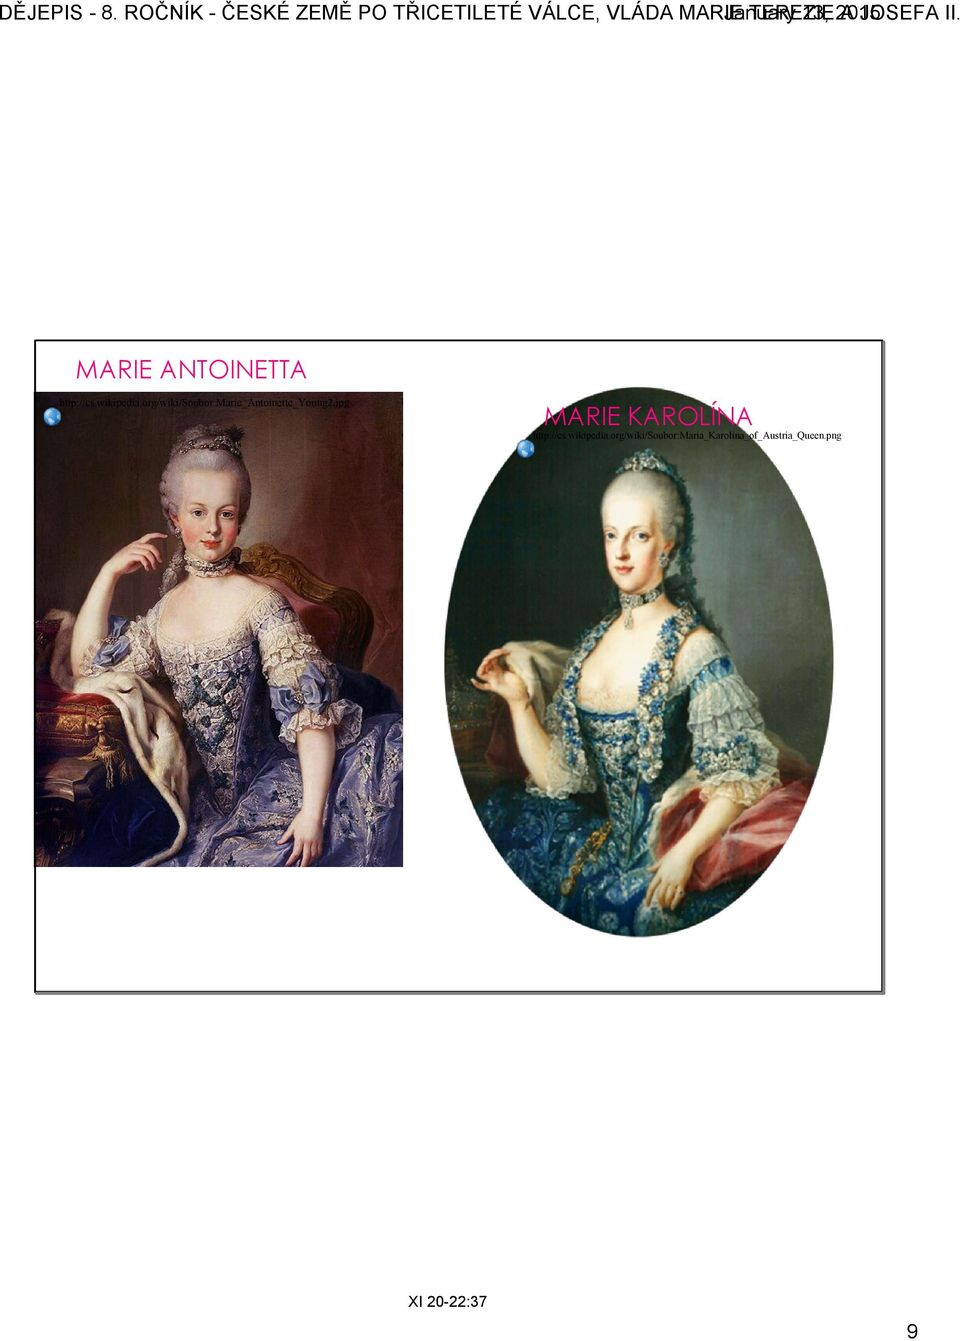 II.. January 13, 2015 MARIE ANTOINETTA http://cs.wikipedia.